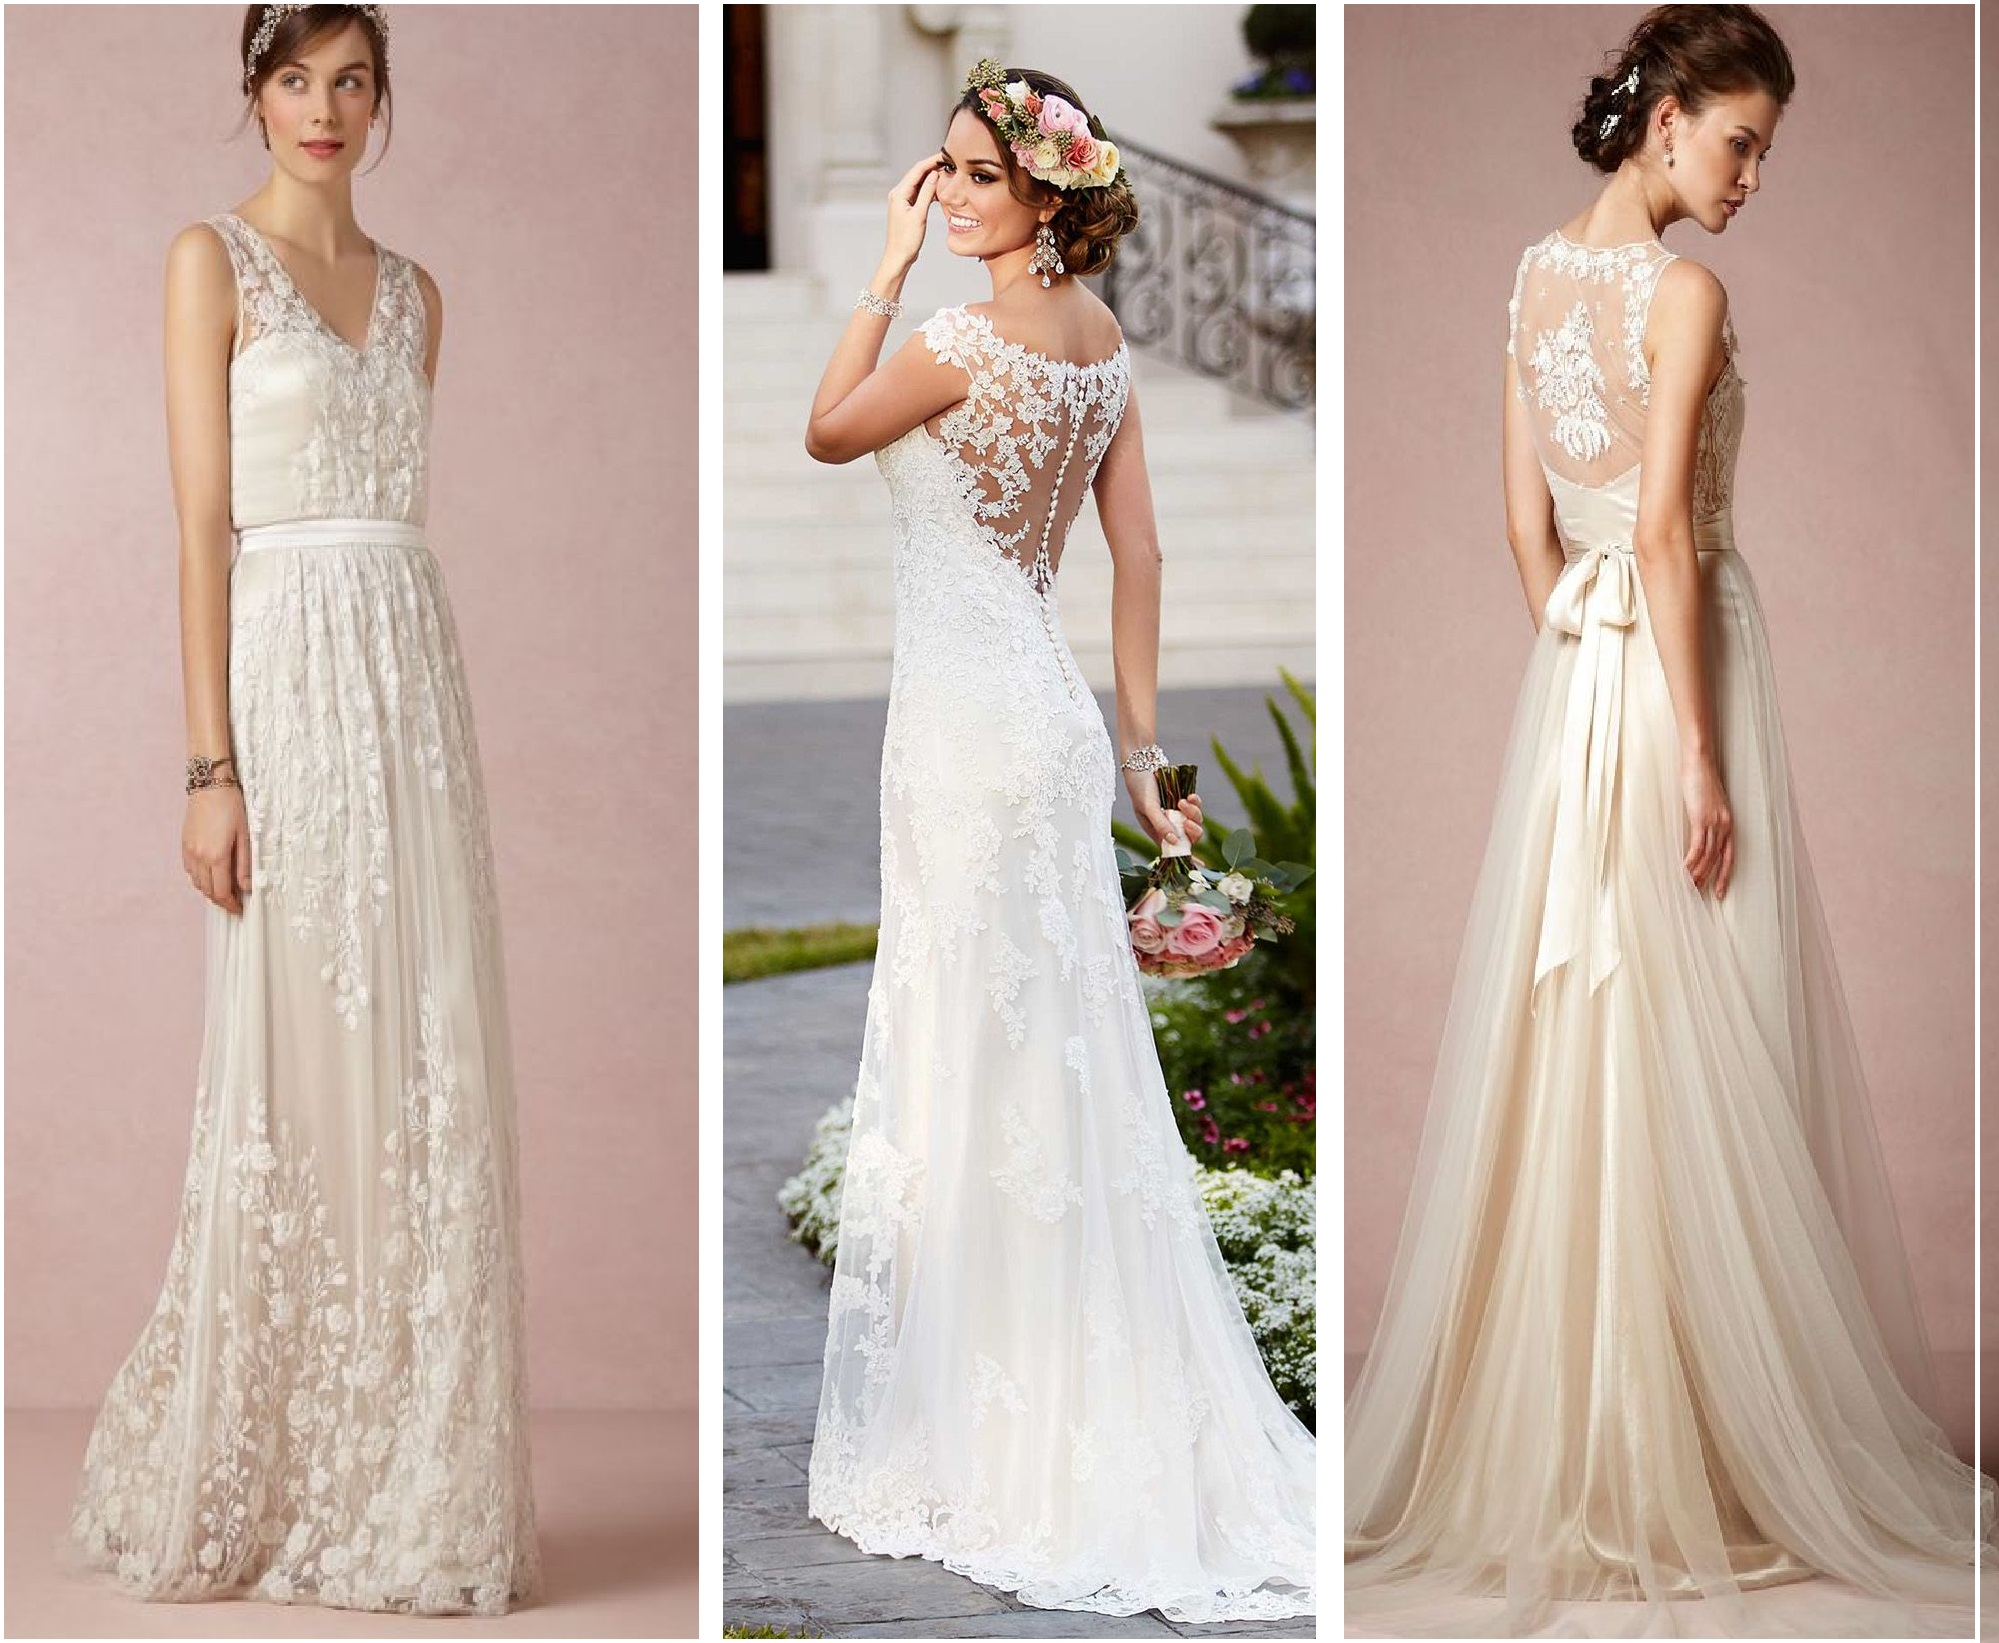 Wedding Gowns 2015: White Wedding Gowns Bridal Dresses Collection 2016-2017